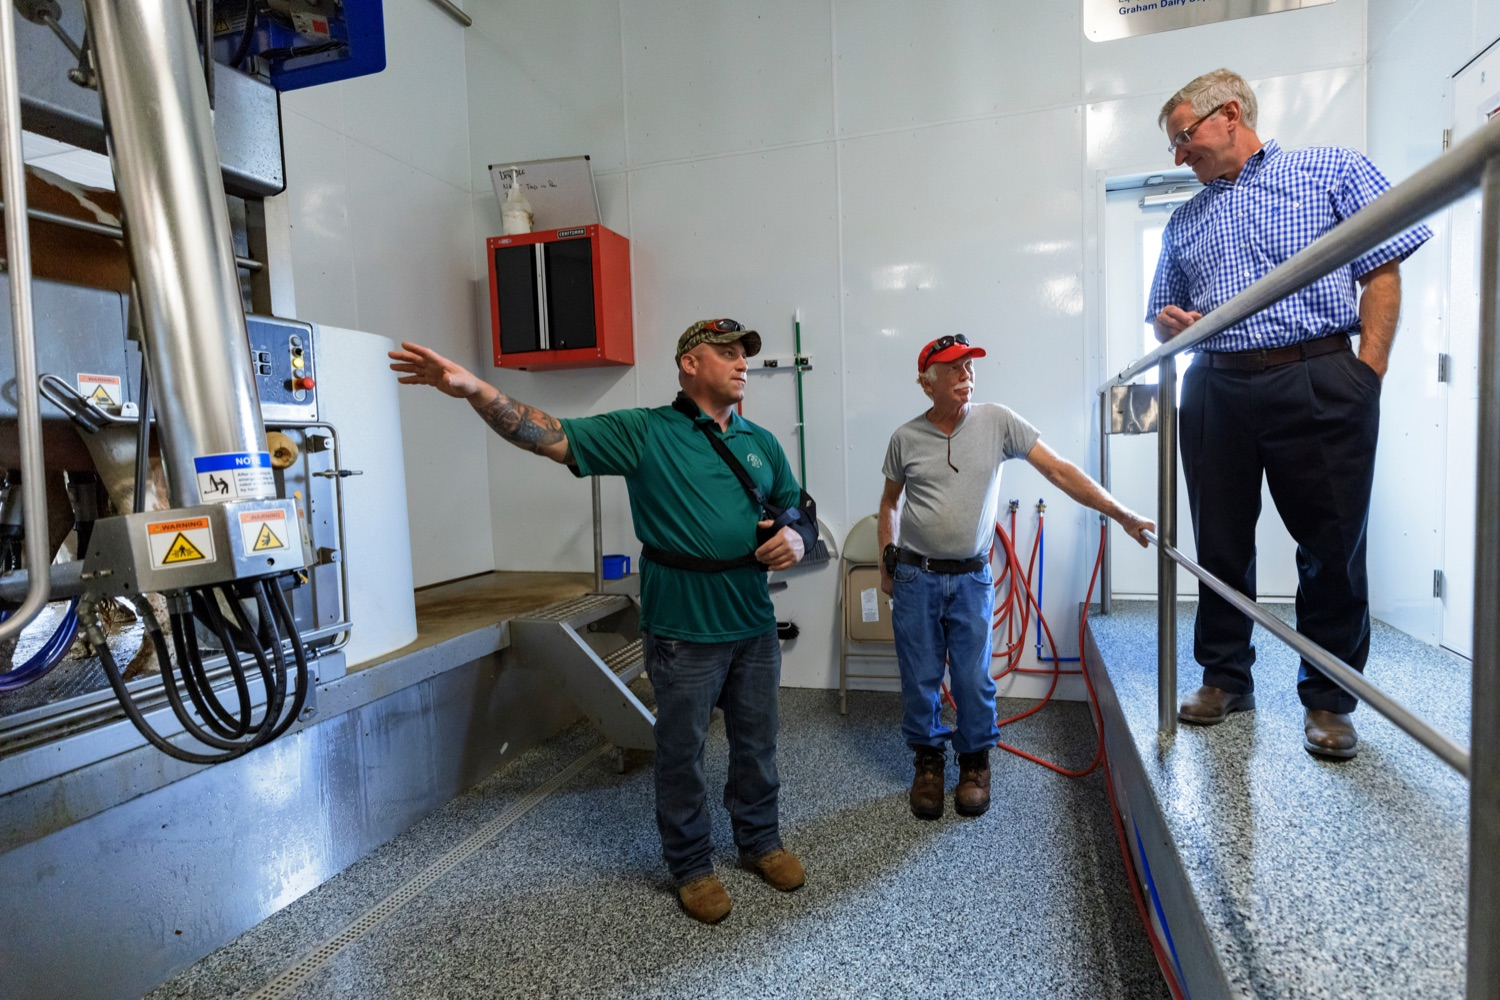 """<a href=""""https://filesource.wostreaming.net/commonwealthofpa/photo/19097_AG_DairyInnovation_NK_003.jpg"""" target=""""_blank"""">⇣Download Photo<br></a>PA Dept. of Agriculture Secretary Russell Redding gets a tour of the """"Robot Room"""" from Pleasant Lane Farms Todd Frye, co-owner, left, and father Ralph Frye, founder, center, at the farm in Latrobe on Thursday, September 9, 2021. In 2019, Pleasant Lane Farms reconstructed their operation and on-farm business plan to safeguard the farms future for the next generation. The Frye family constructed a new barn equipped with a robotic milker, atmospheric climate control to regulate barn temperature and cow brushes to promote cow comfort. The barn directly supplies the on-farm cheese processing facility, which received a $364,082 Pennsylvania Dairy Investment Program grant to support marketing and value-added processing equipment investments. Today, the creamery at Pleasant Lane Farms processes 15,000 to 25,000 pounds of milk and produces more 1,700 to 2,900 pounds of cheese each week."""